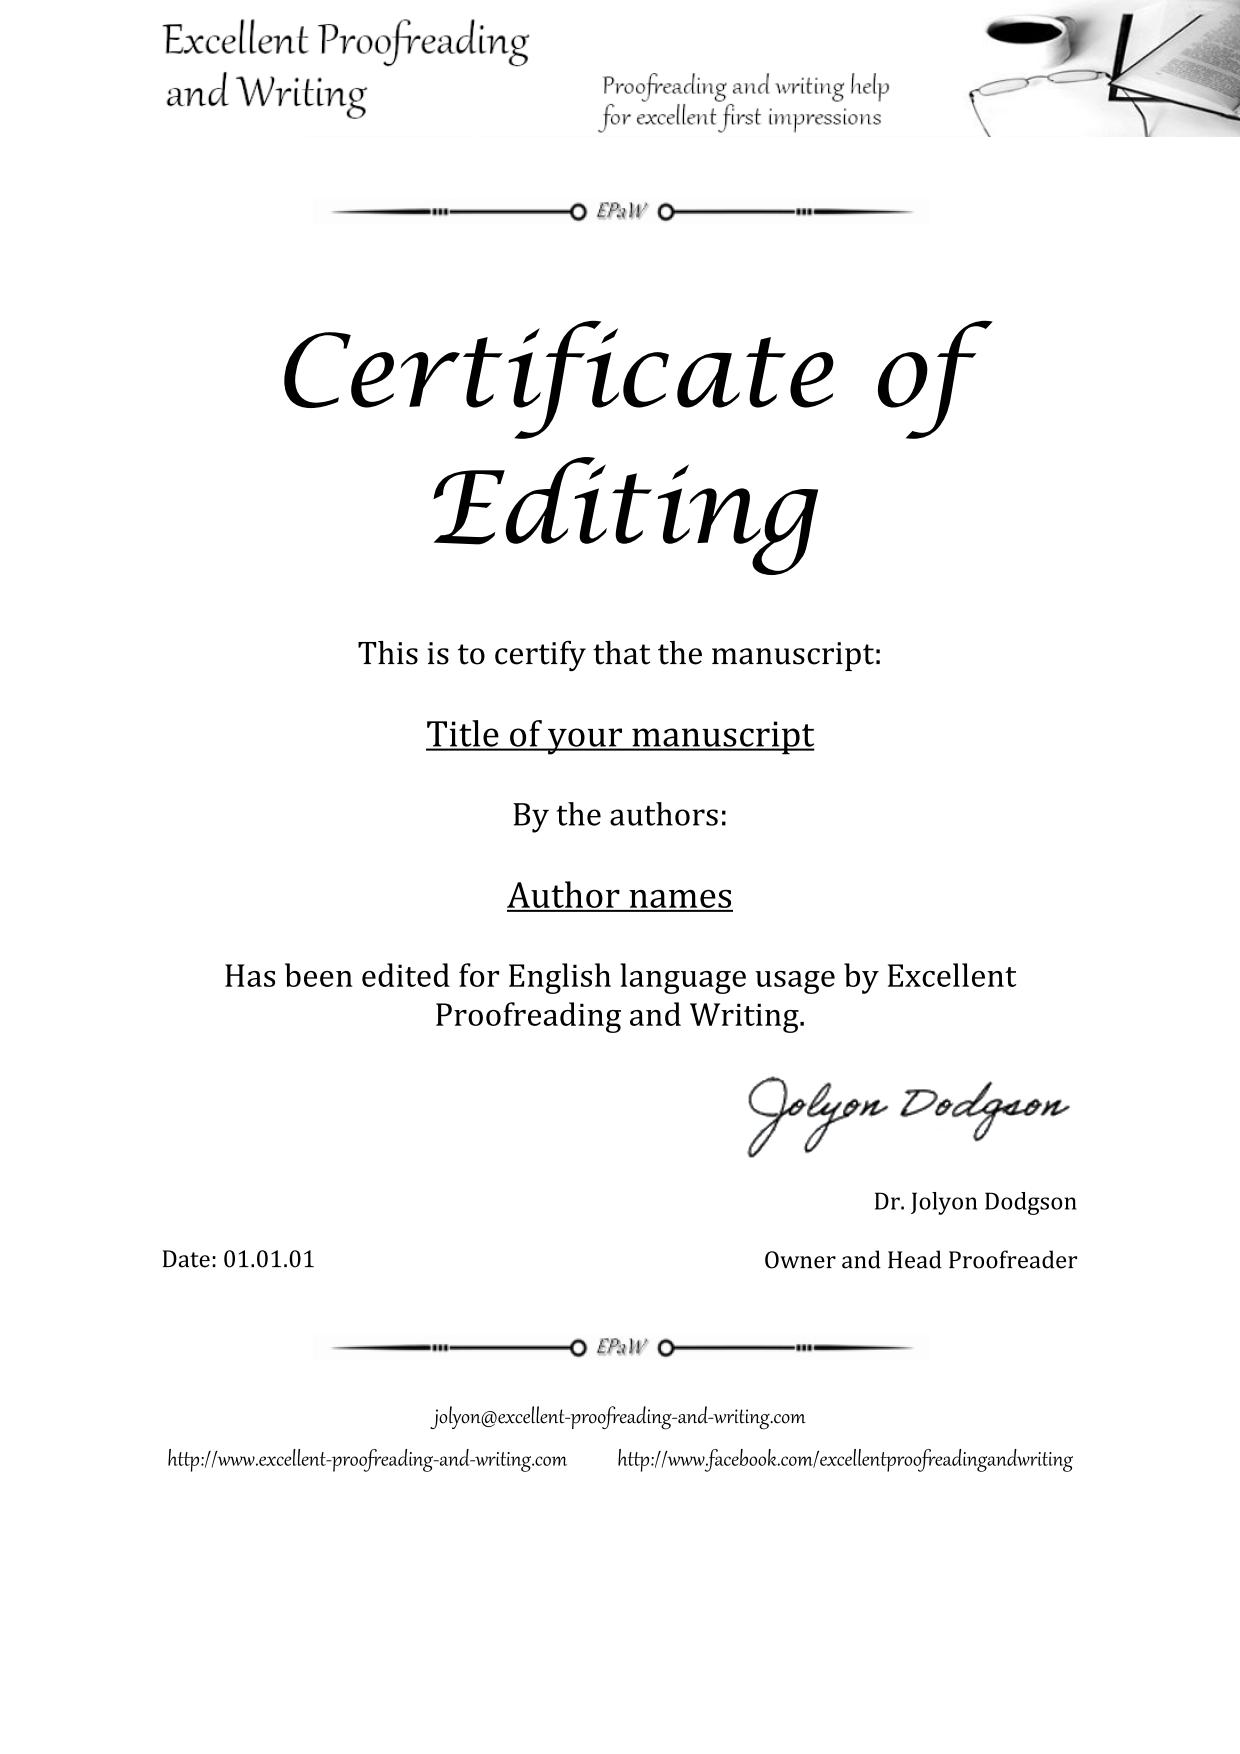 proofreading a research paper Elite editing is based in new york, ny esl editing, research paper proofreading, thesis editing, and editing of briefs and reports in mla format.